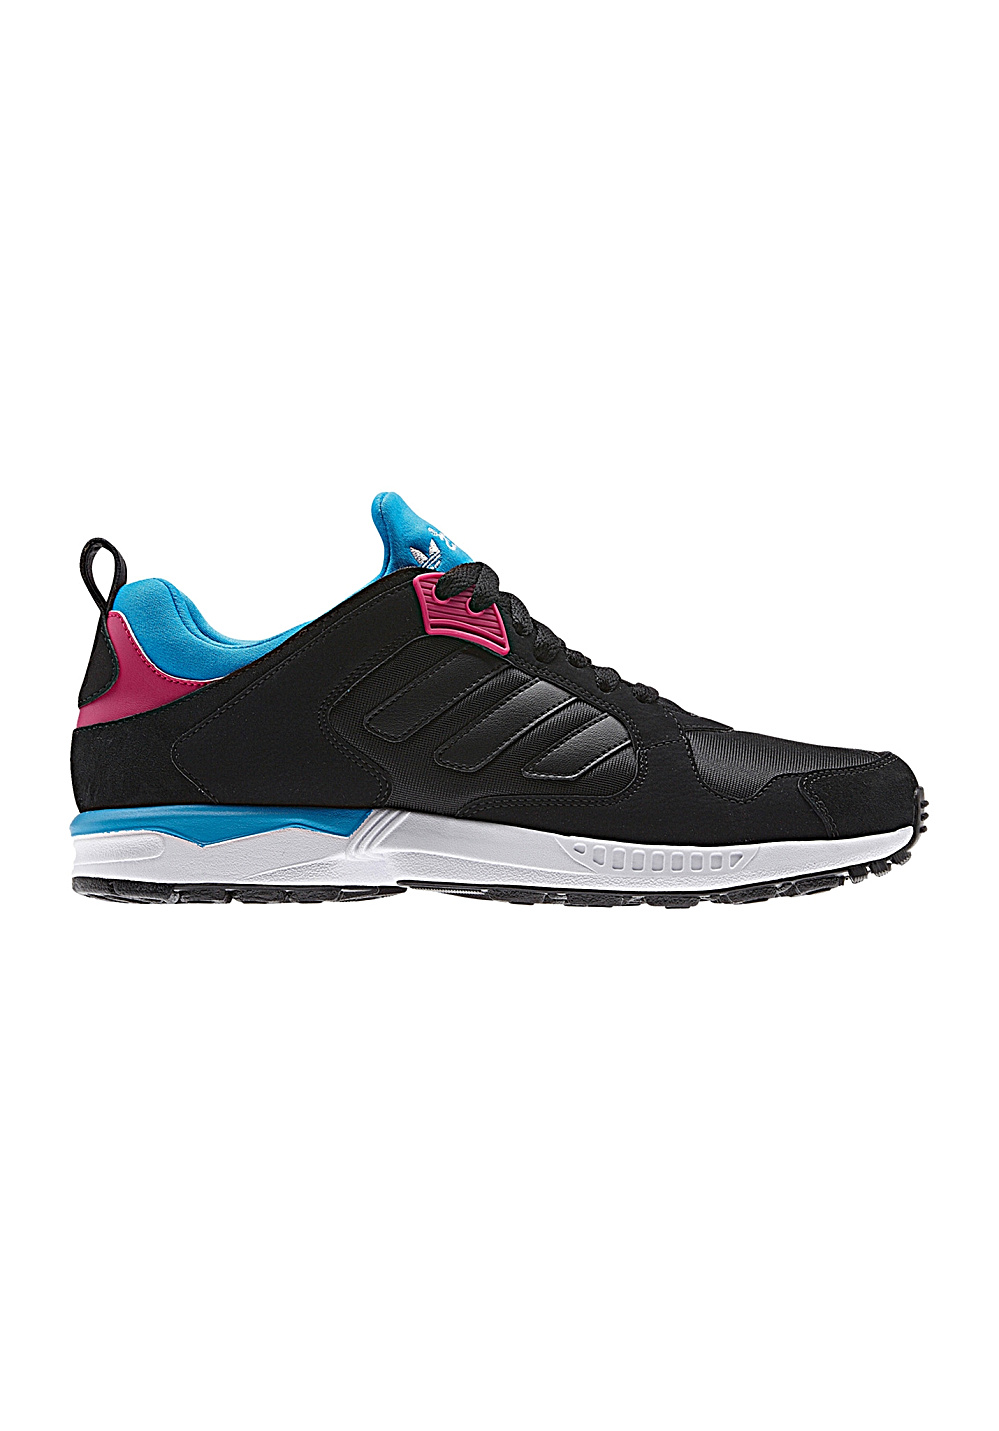 new styles c4d6c 194e0 ADIDAS ORIGINALS ZX 5000 RSPN - Sneakers for Men - Black